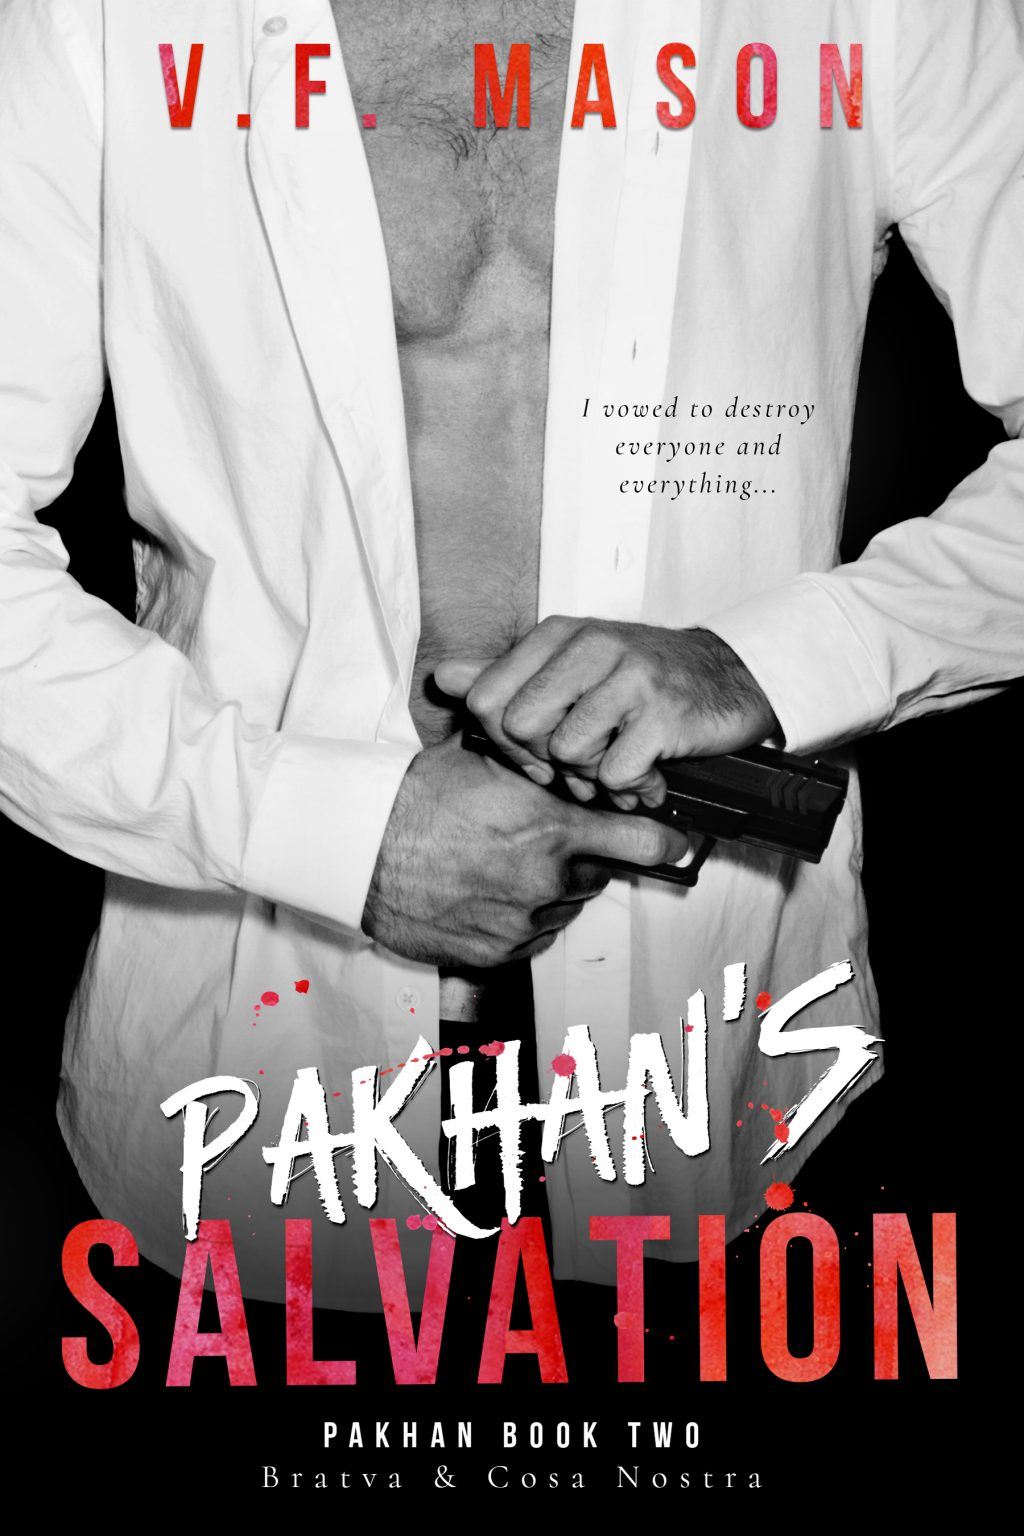 Pakhan's Salvation (Pakhan Duet #2) by V.F. Mason